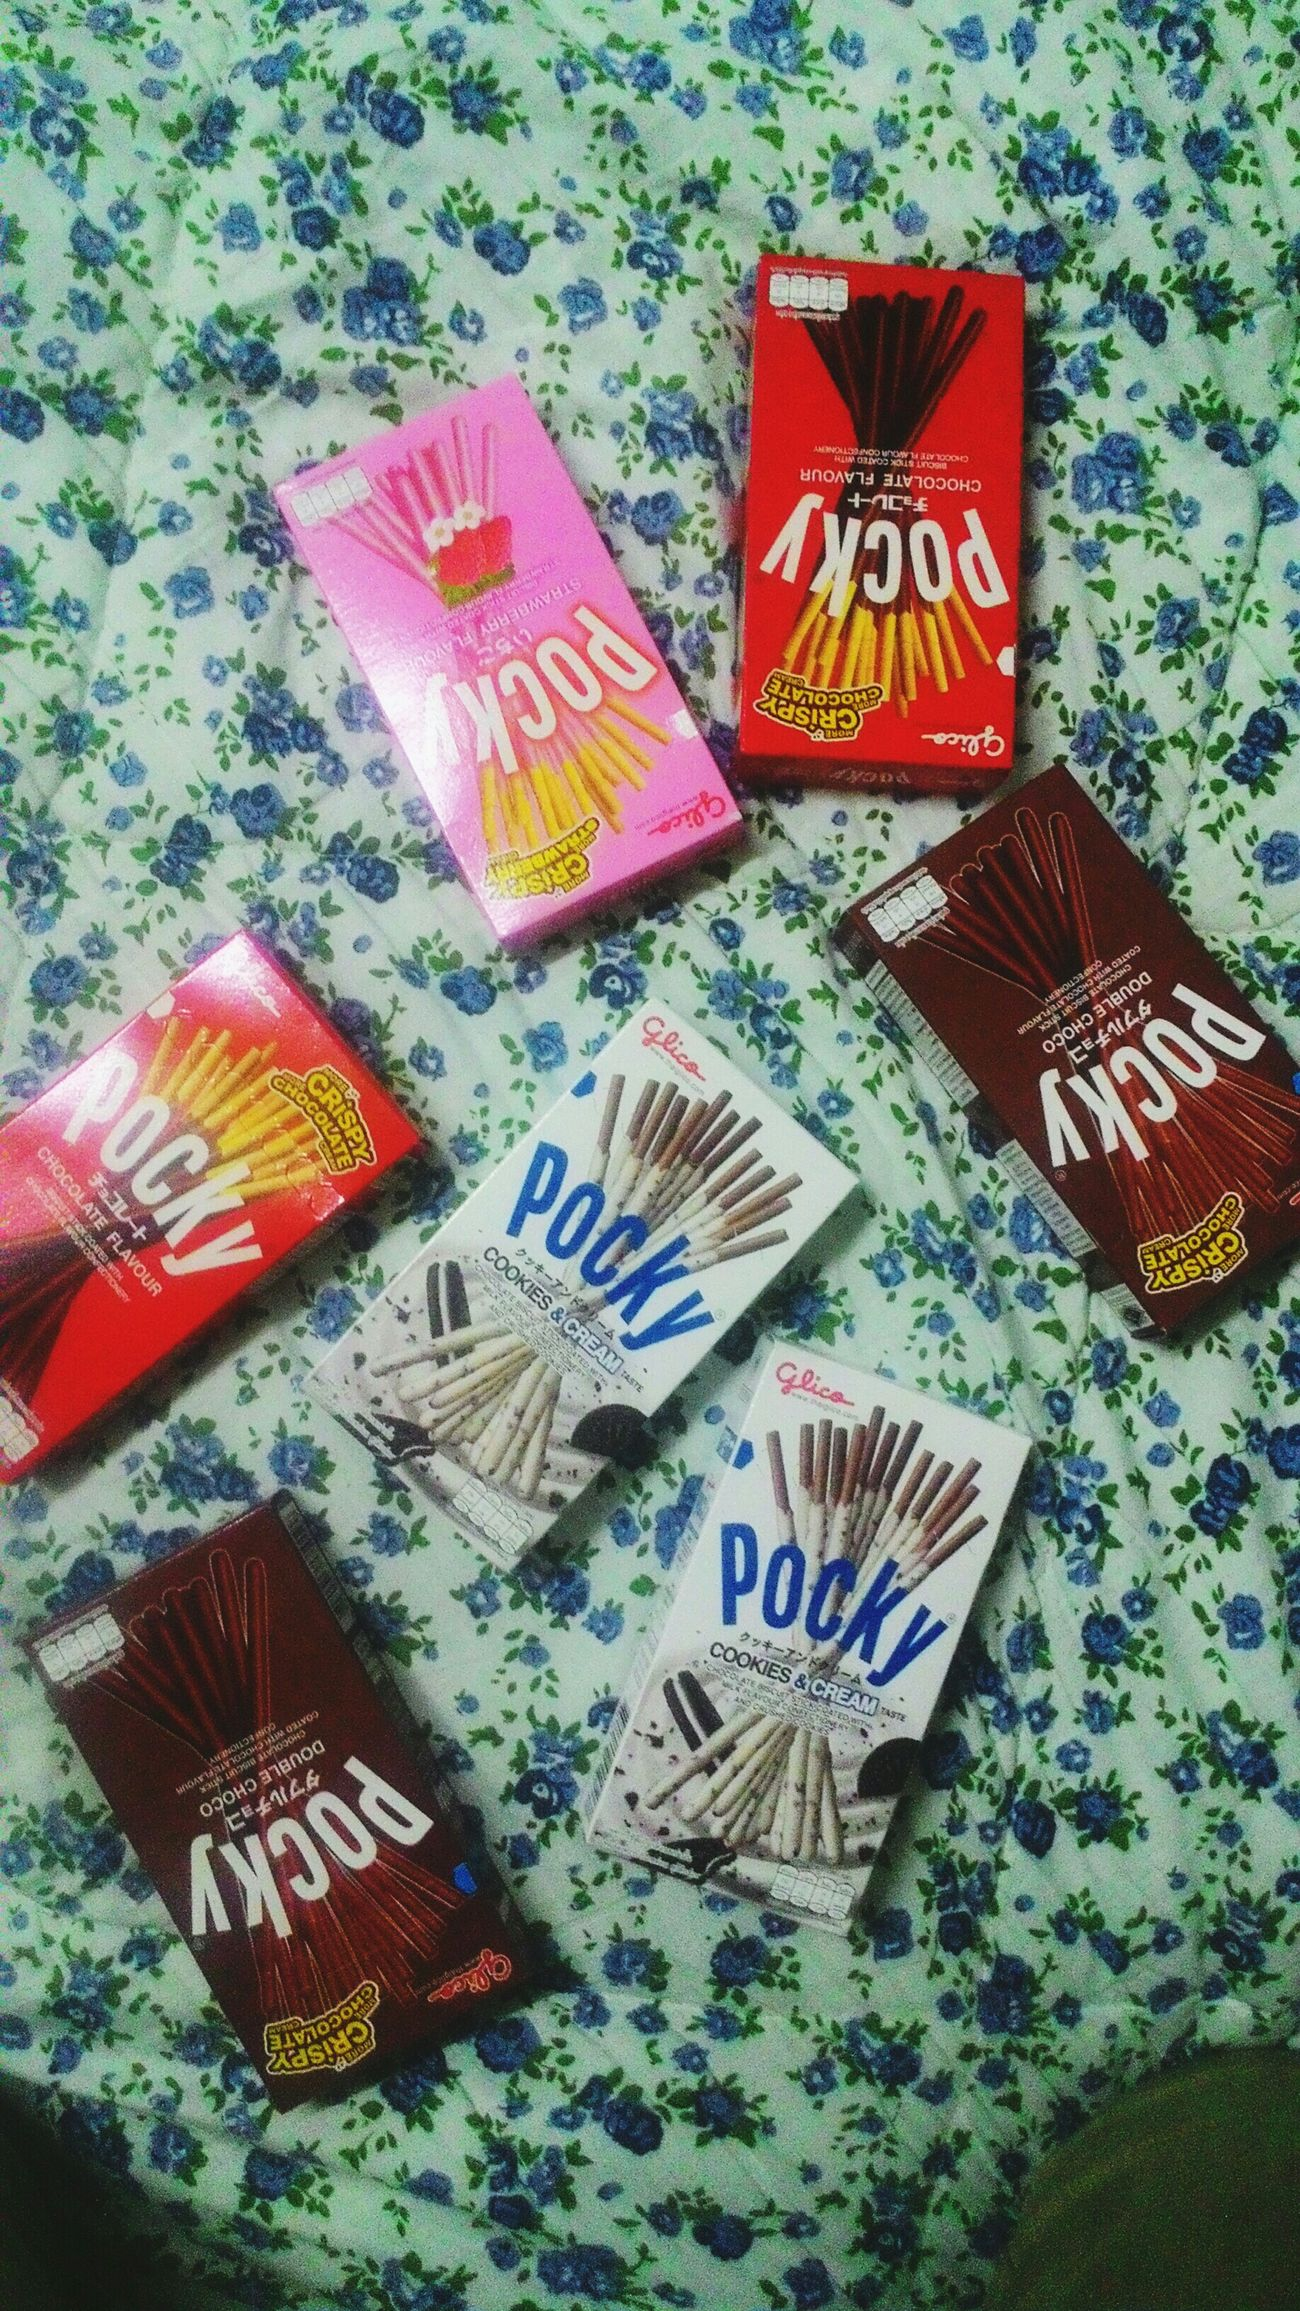 Pocky Pockys Pocky!! Love it! <3